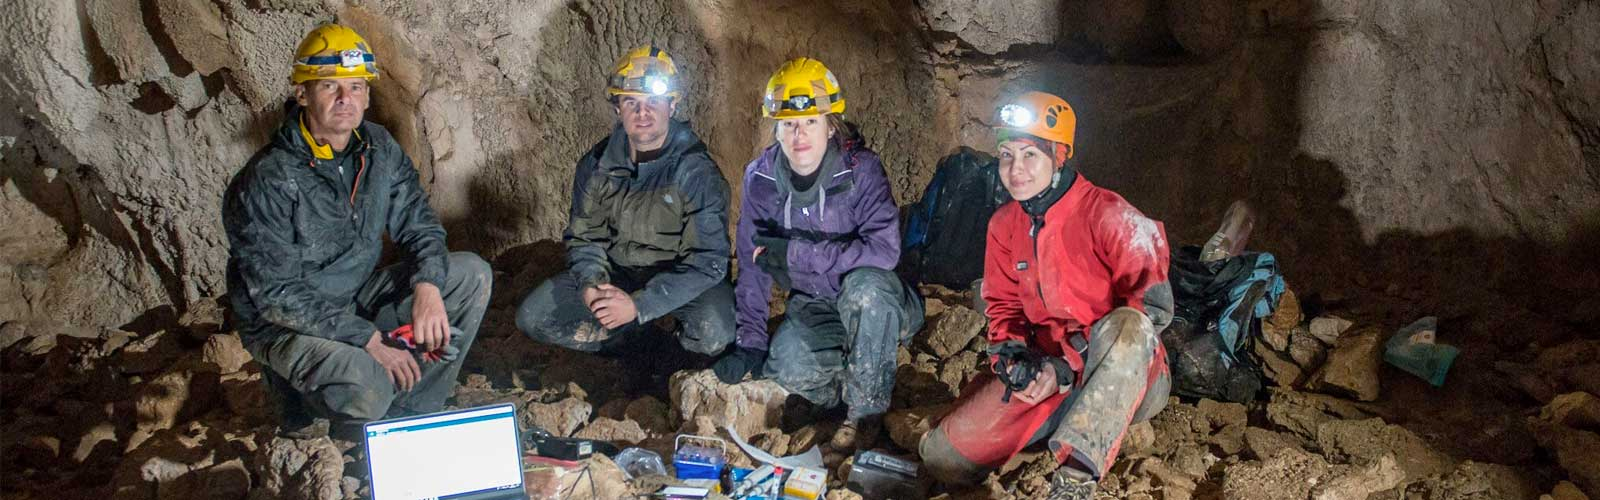 Sequenziare il Dna in una grotta